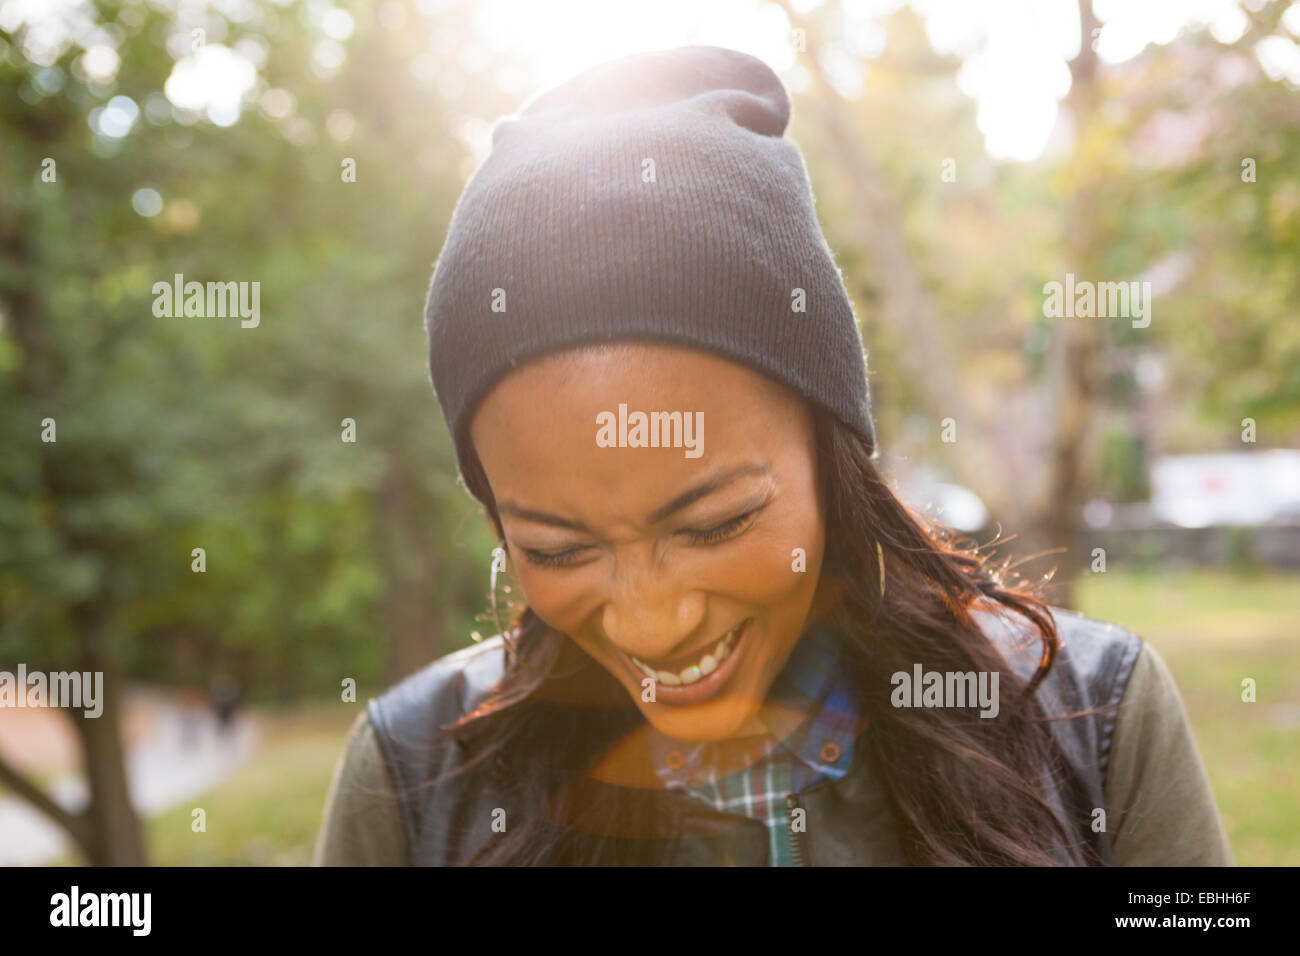 Young woman laughing in park Photo Stock